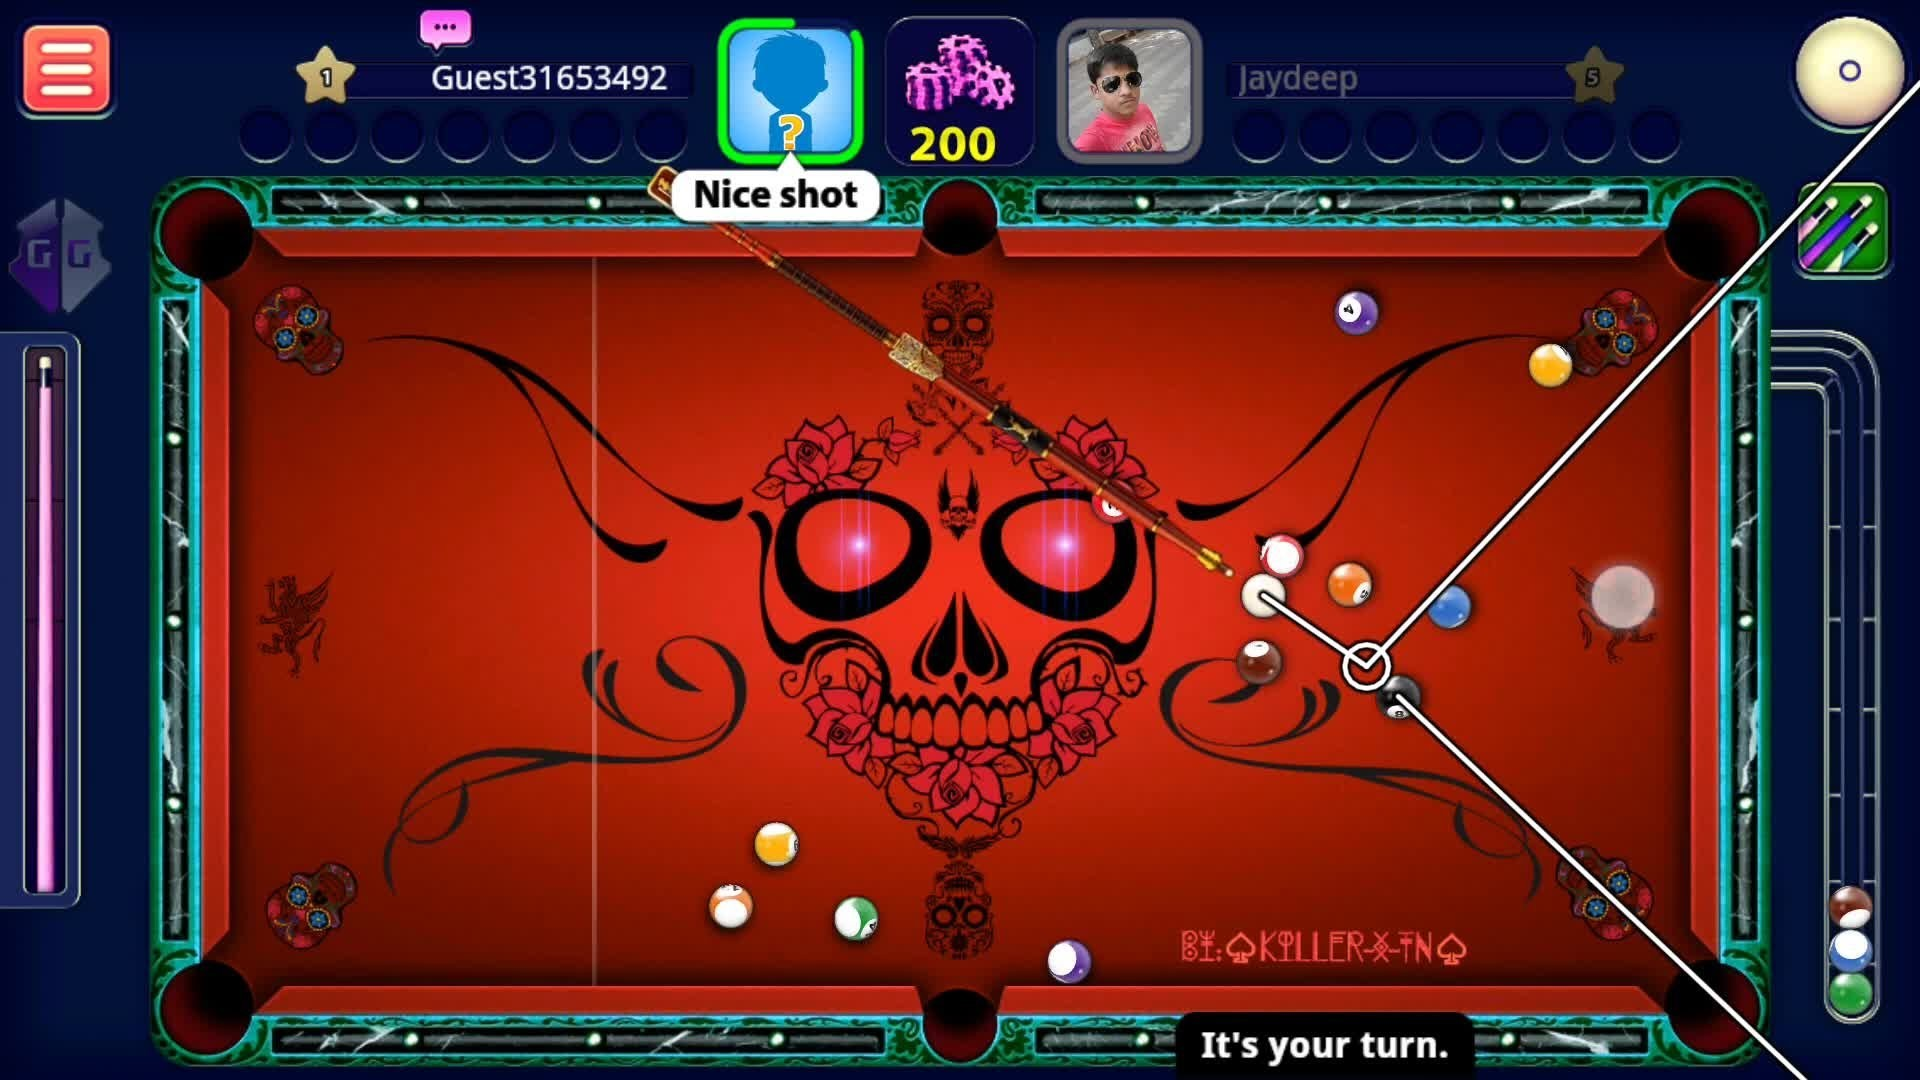 8 ball pool avatar images download